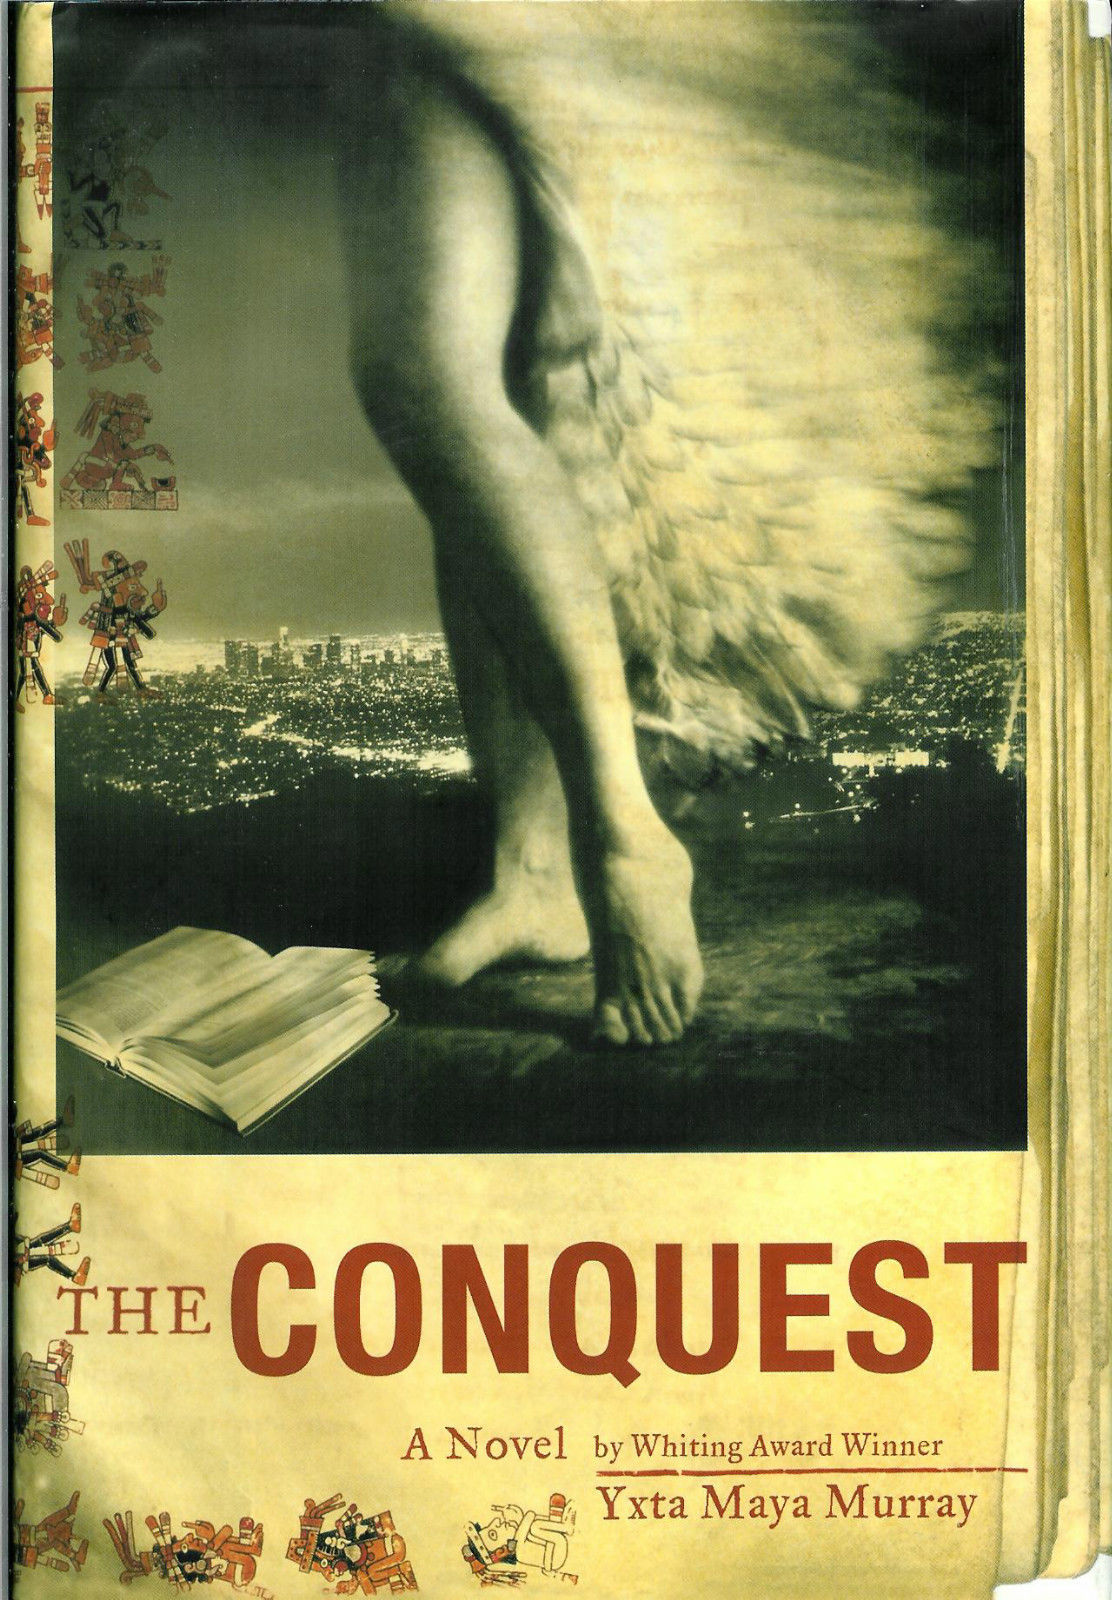 the conquest les murray The conquest of mexico an annotated bibliography dr nancy fitch professor of history california state university, fullerton general discussion of the primary sources used in this project.